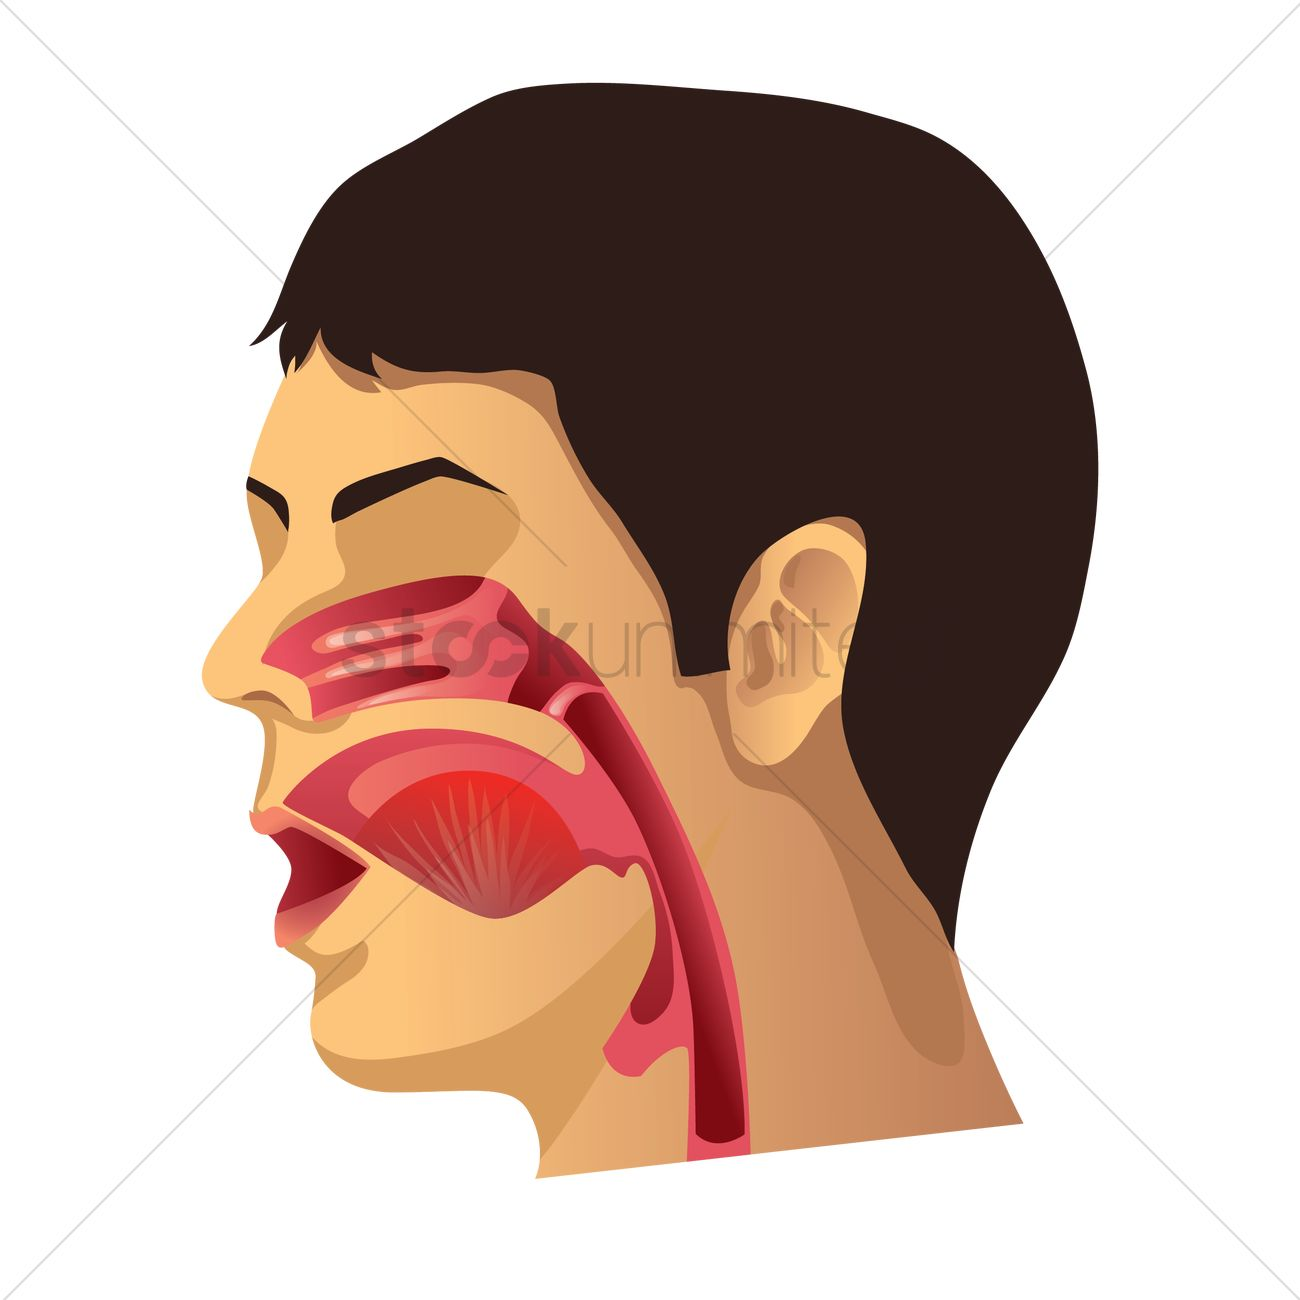 Human throat anatomy Vector Image - 1759429 | StockUnlimited